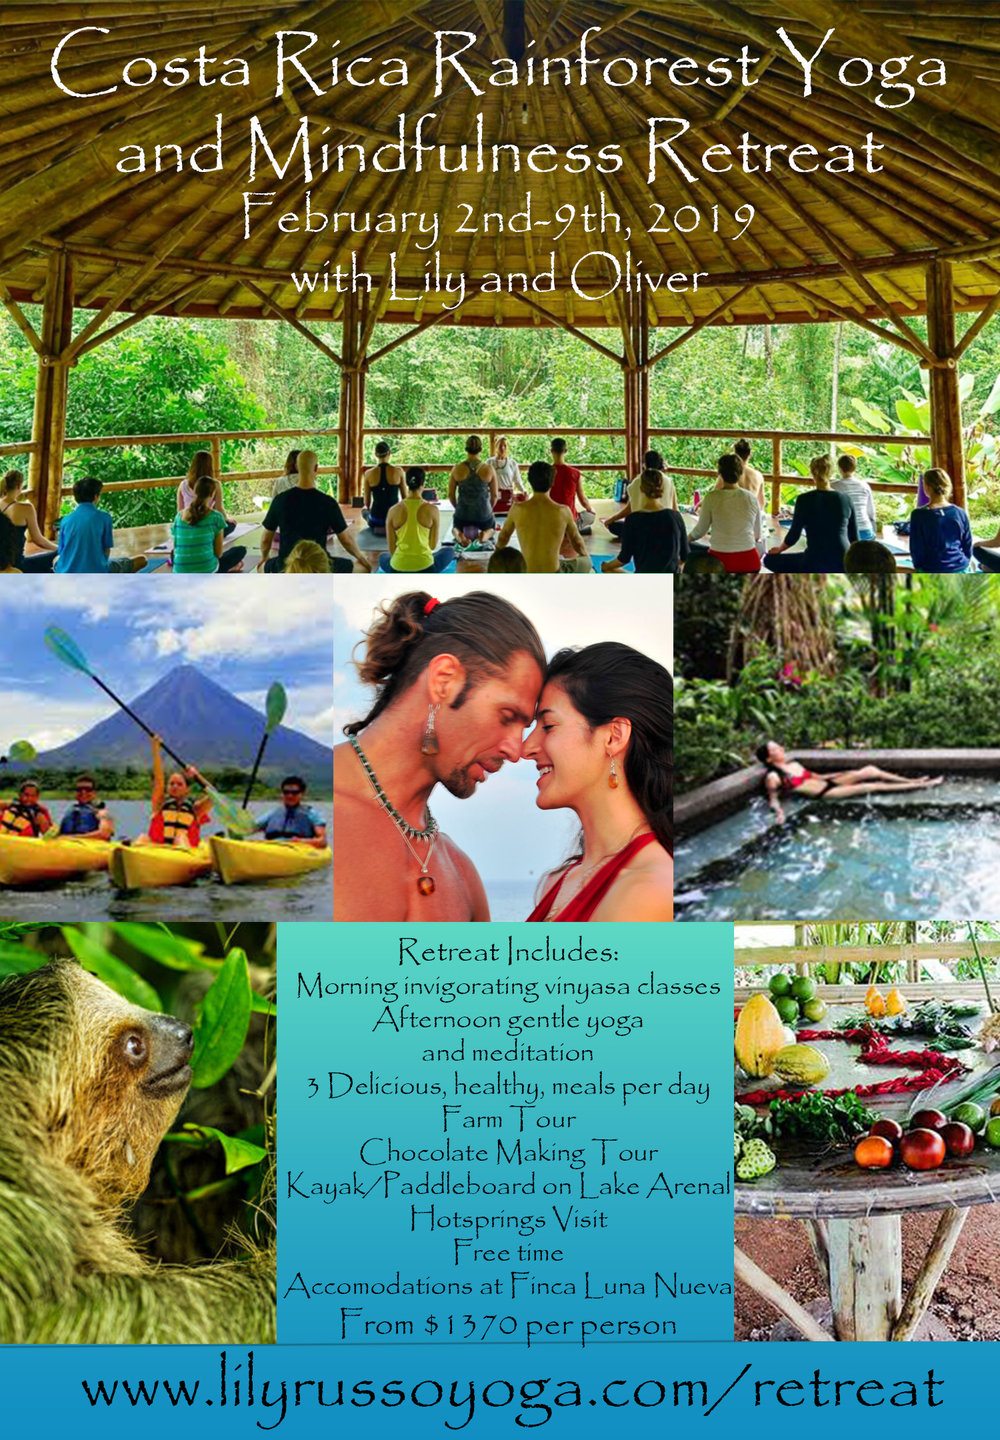 yoga retreat flyer costa rica.jpg